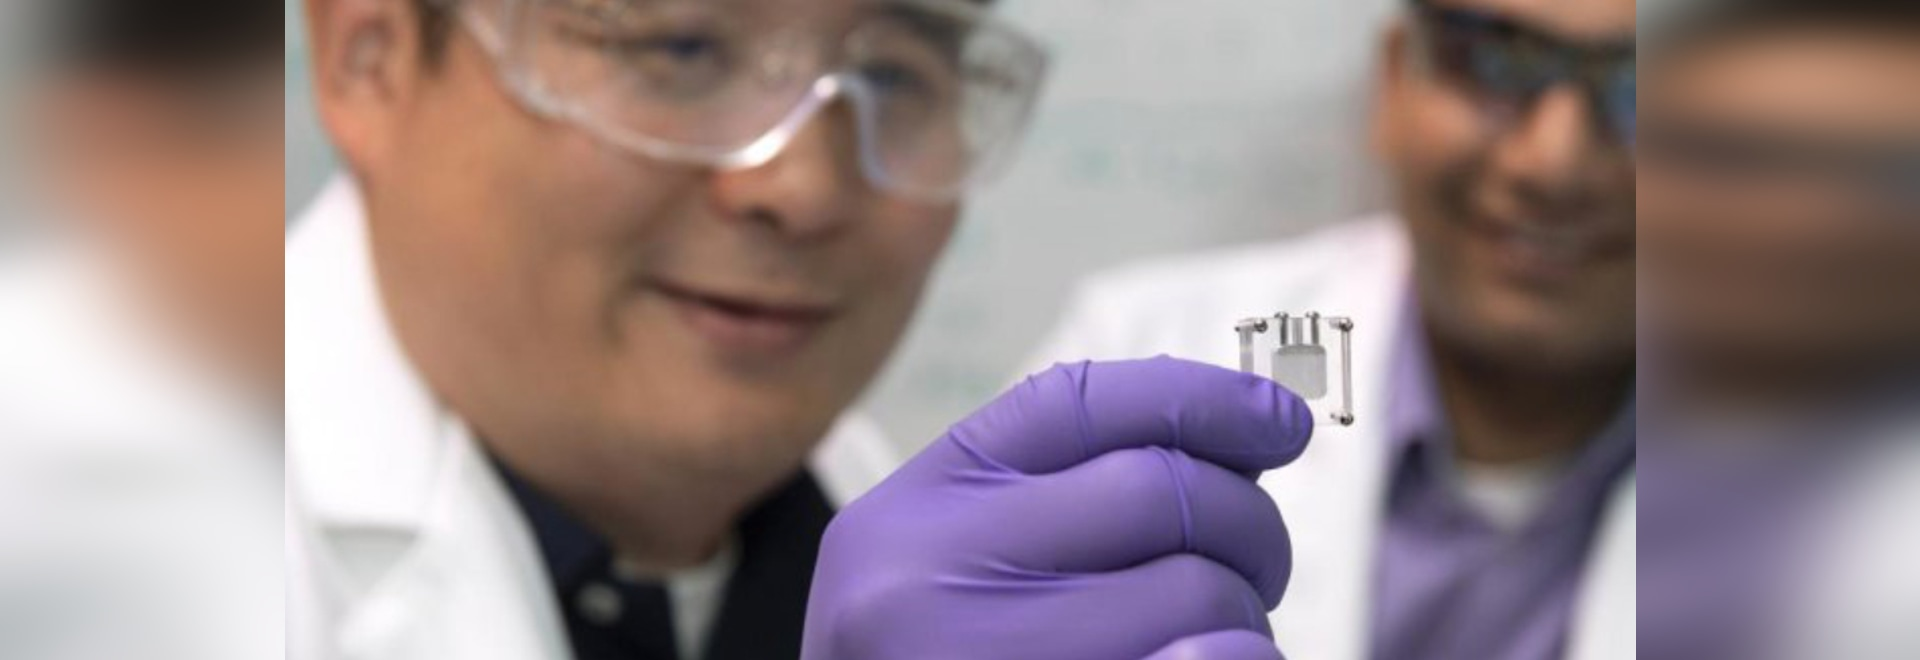 Fuel Cell to Harvest Body's Glucose as Power Source for Medical Implants